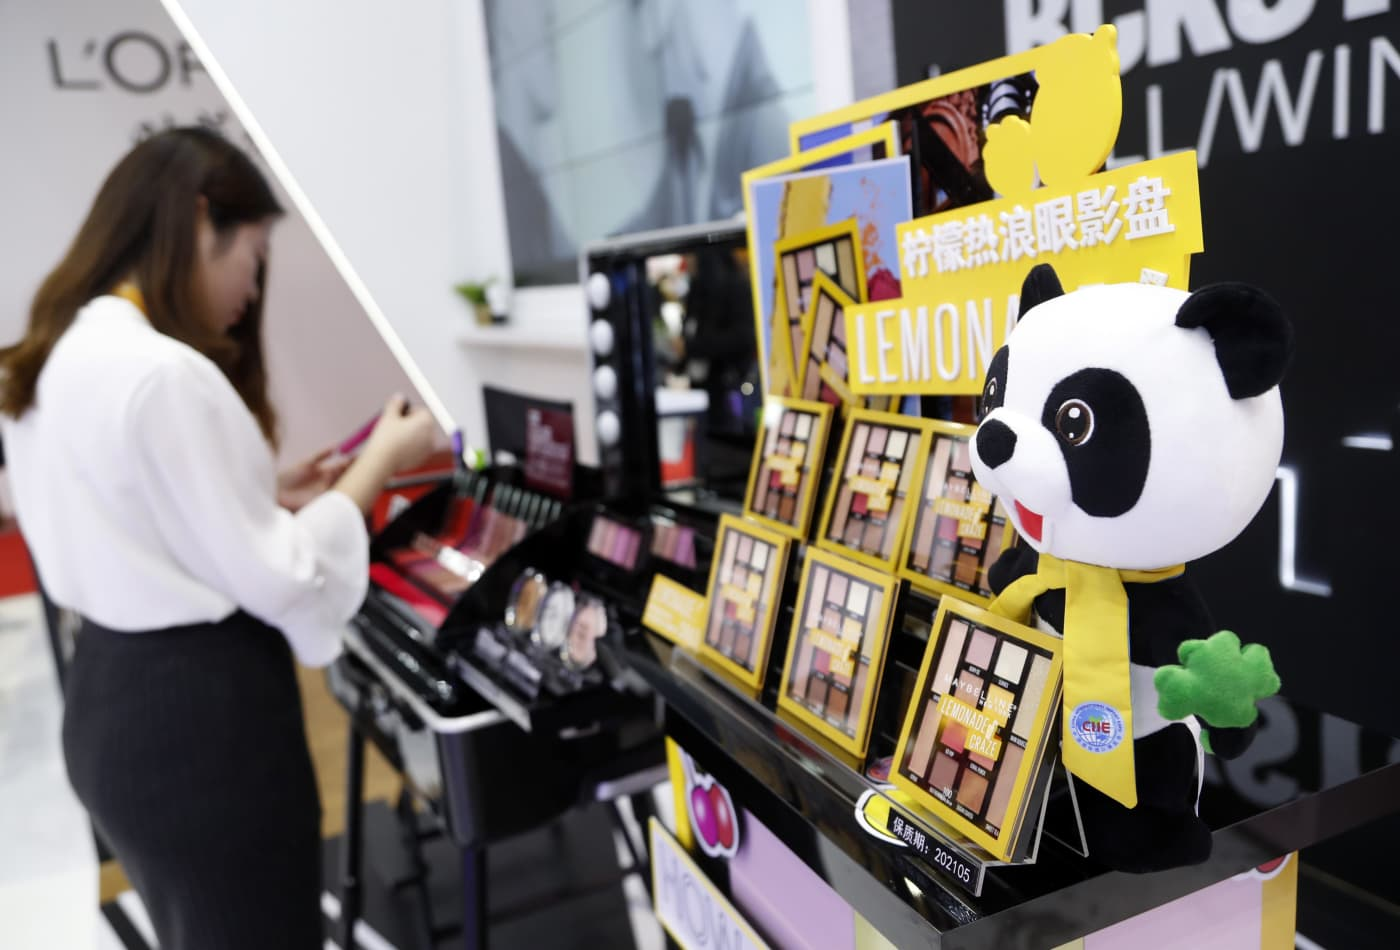 How L'Oreal uses China as a place to learn about digital